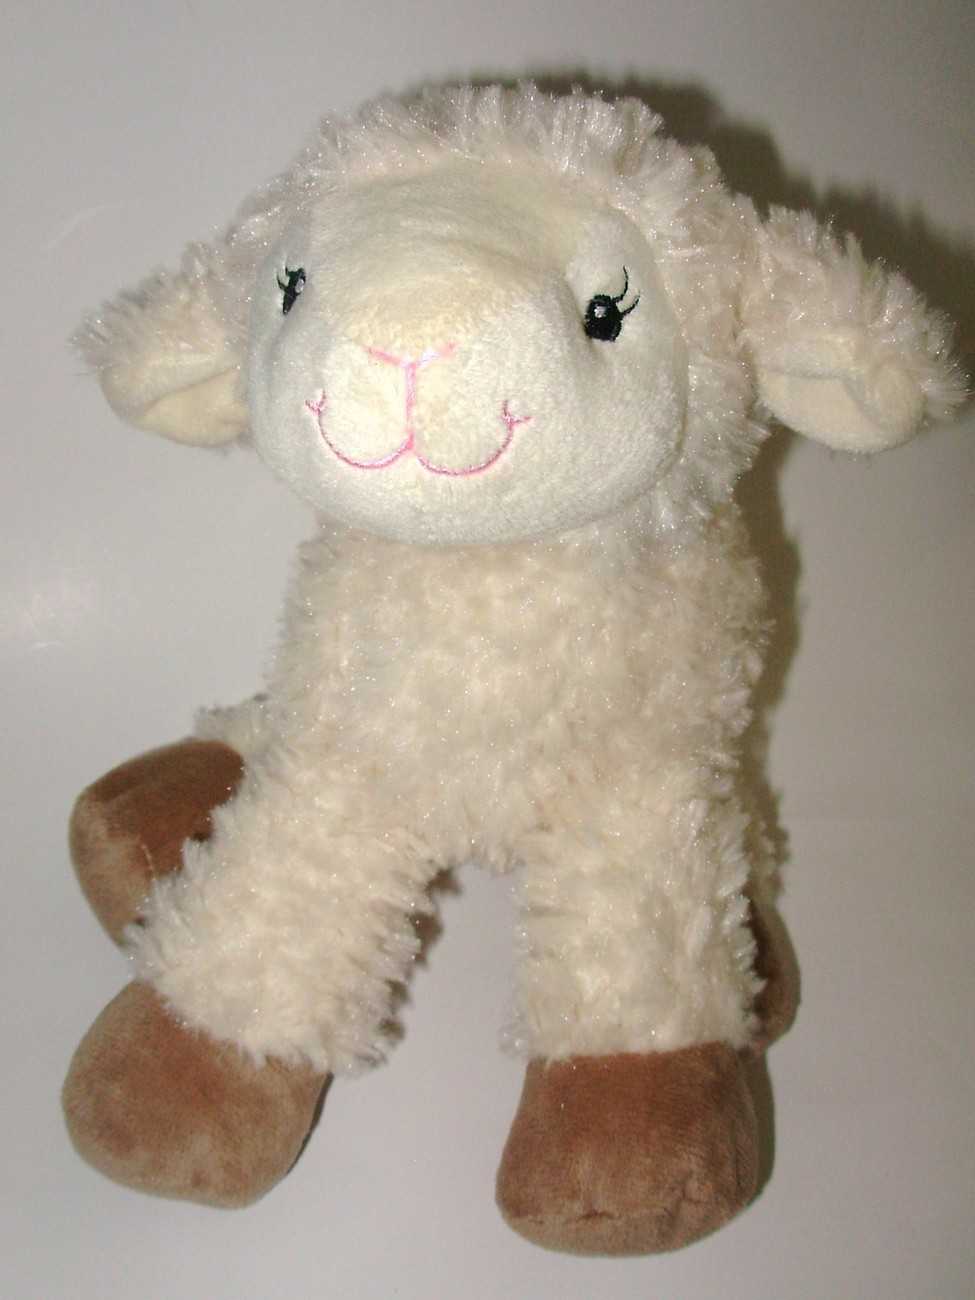 Best Made Toys Lamb Sheep Plush Stuffed Animal Target Off